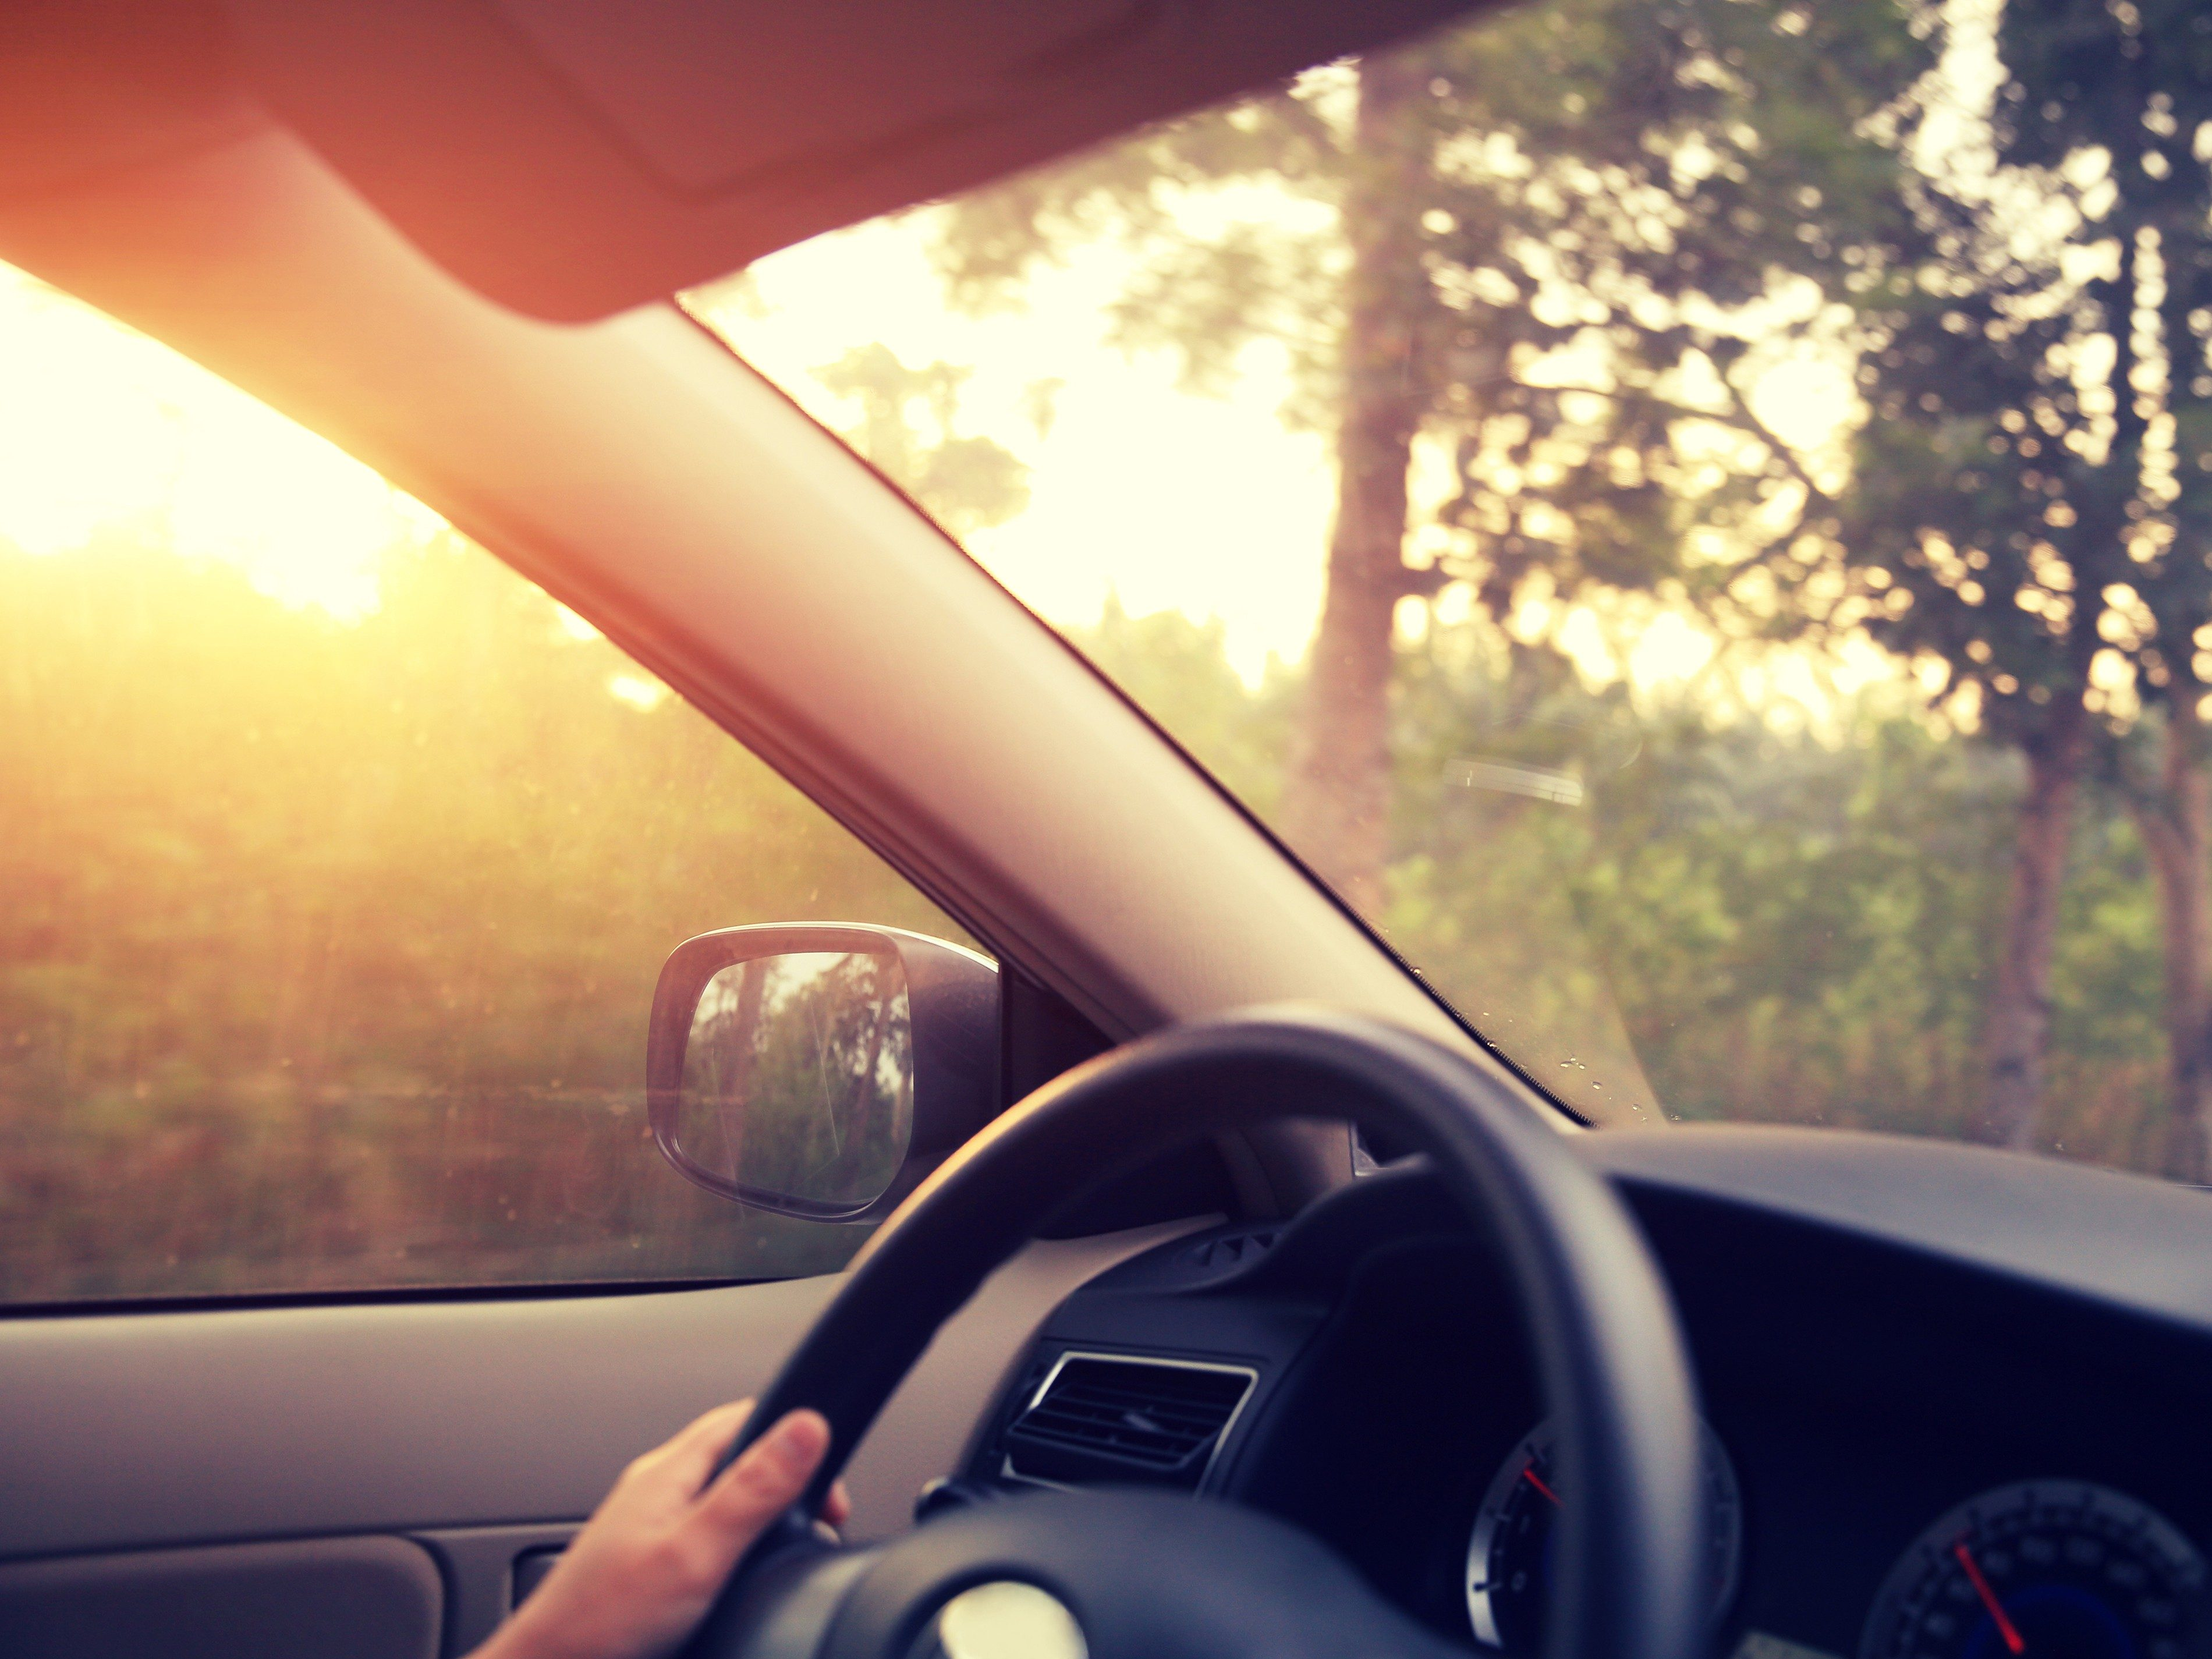 Driving tip #1: Leave early.